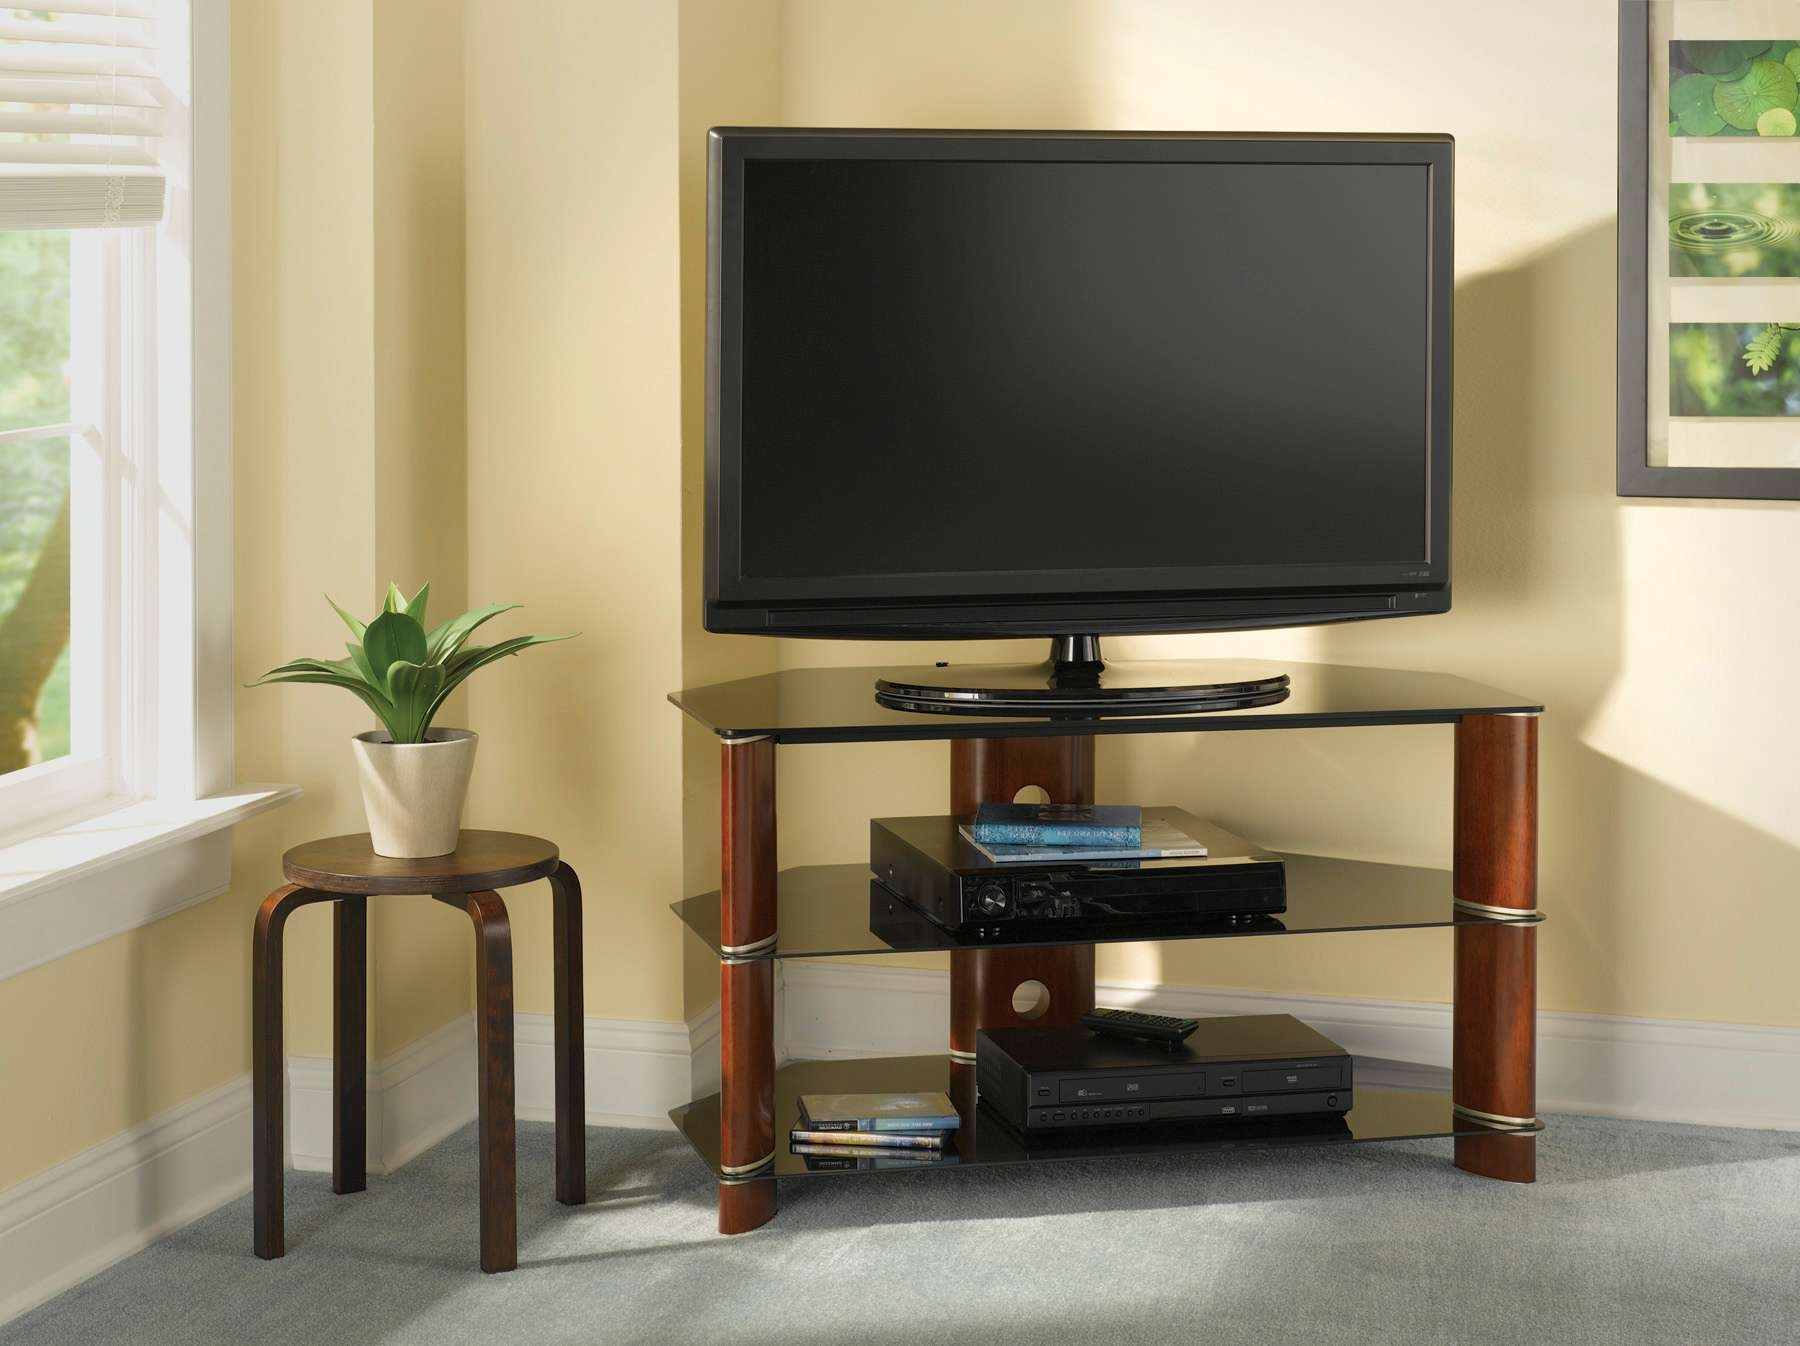 Outstanding Modern Corner Tv Stand And Contemporary Trends Images Regarding Tv Stands For Corners (View 10 of 15)